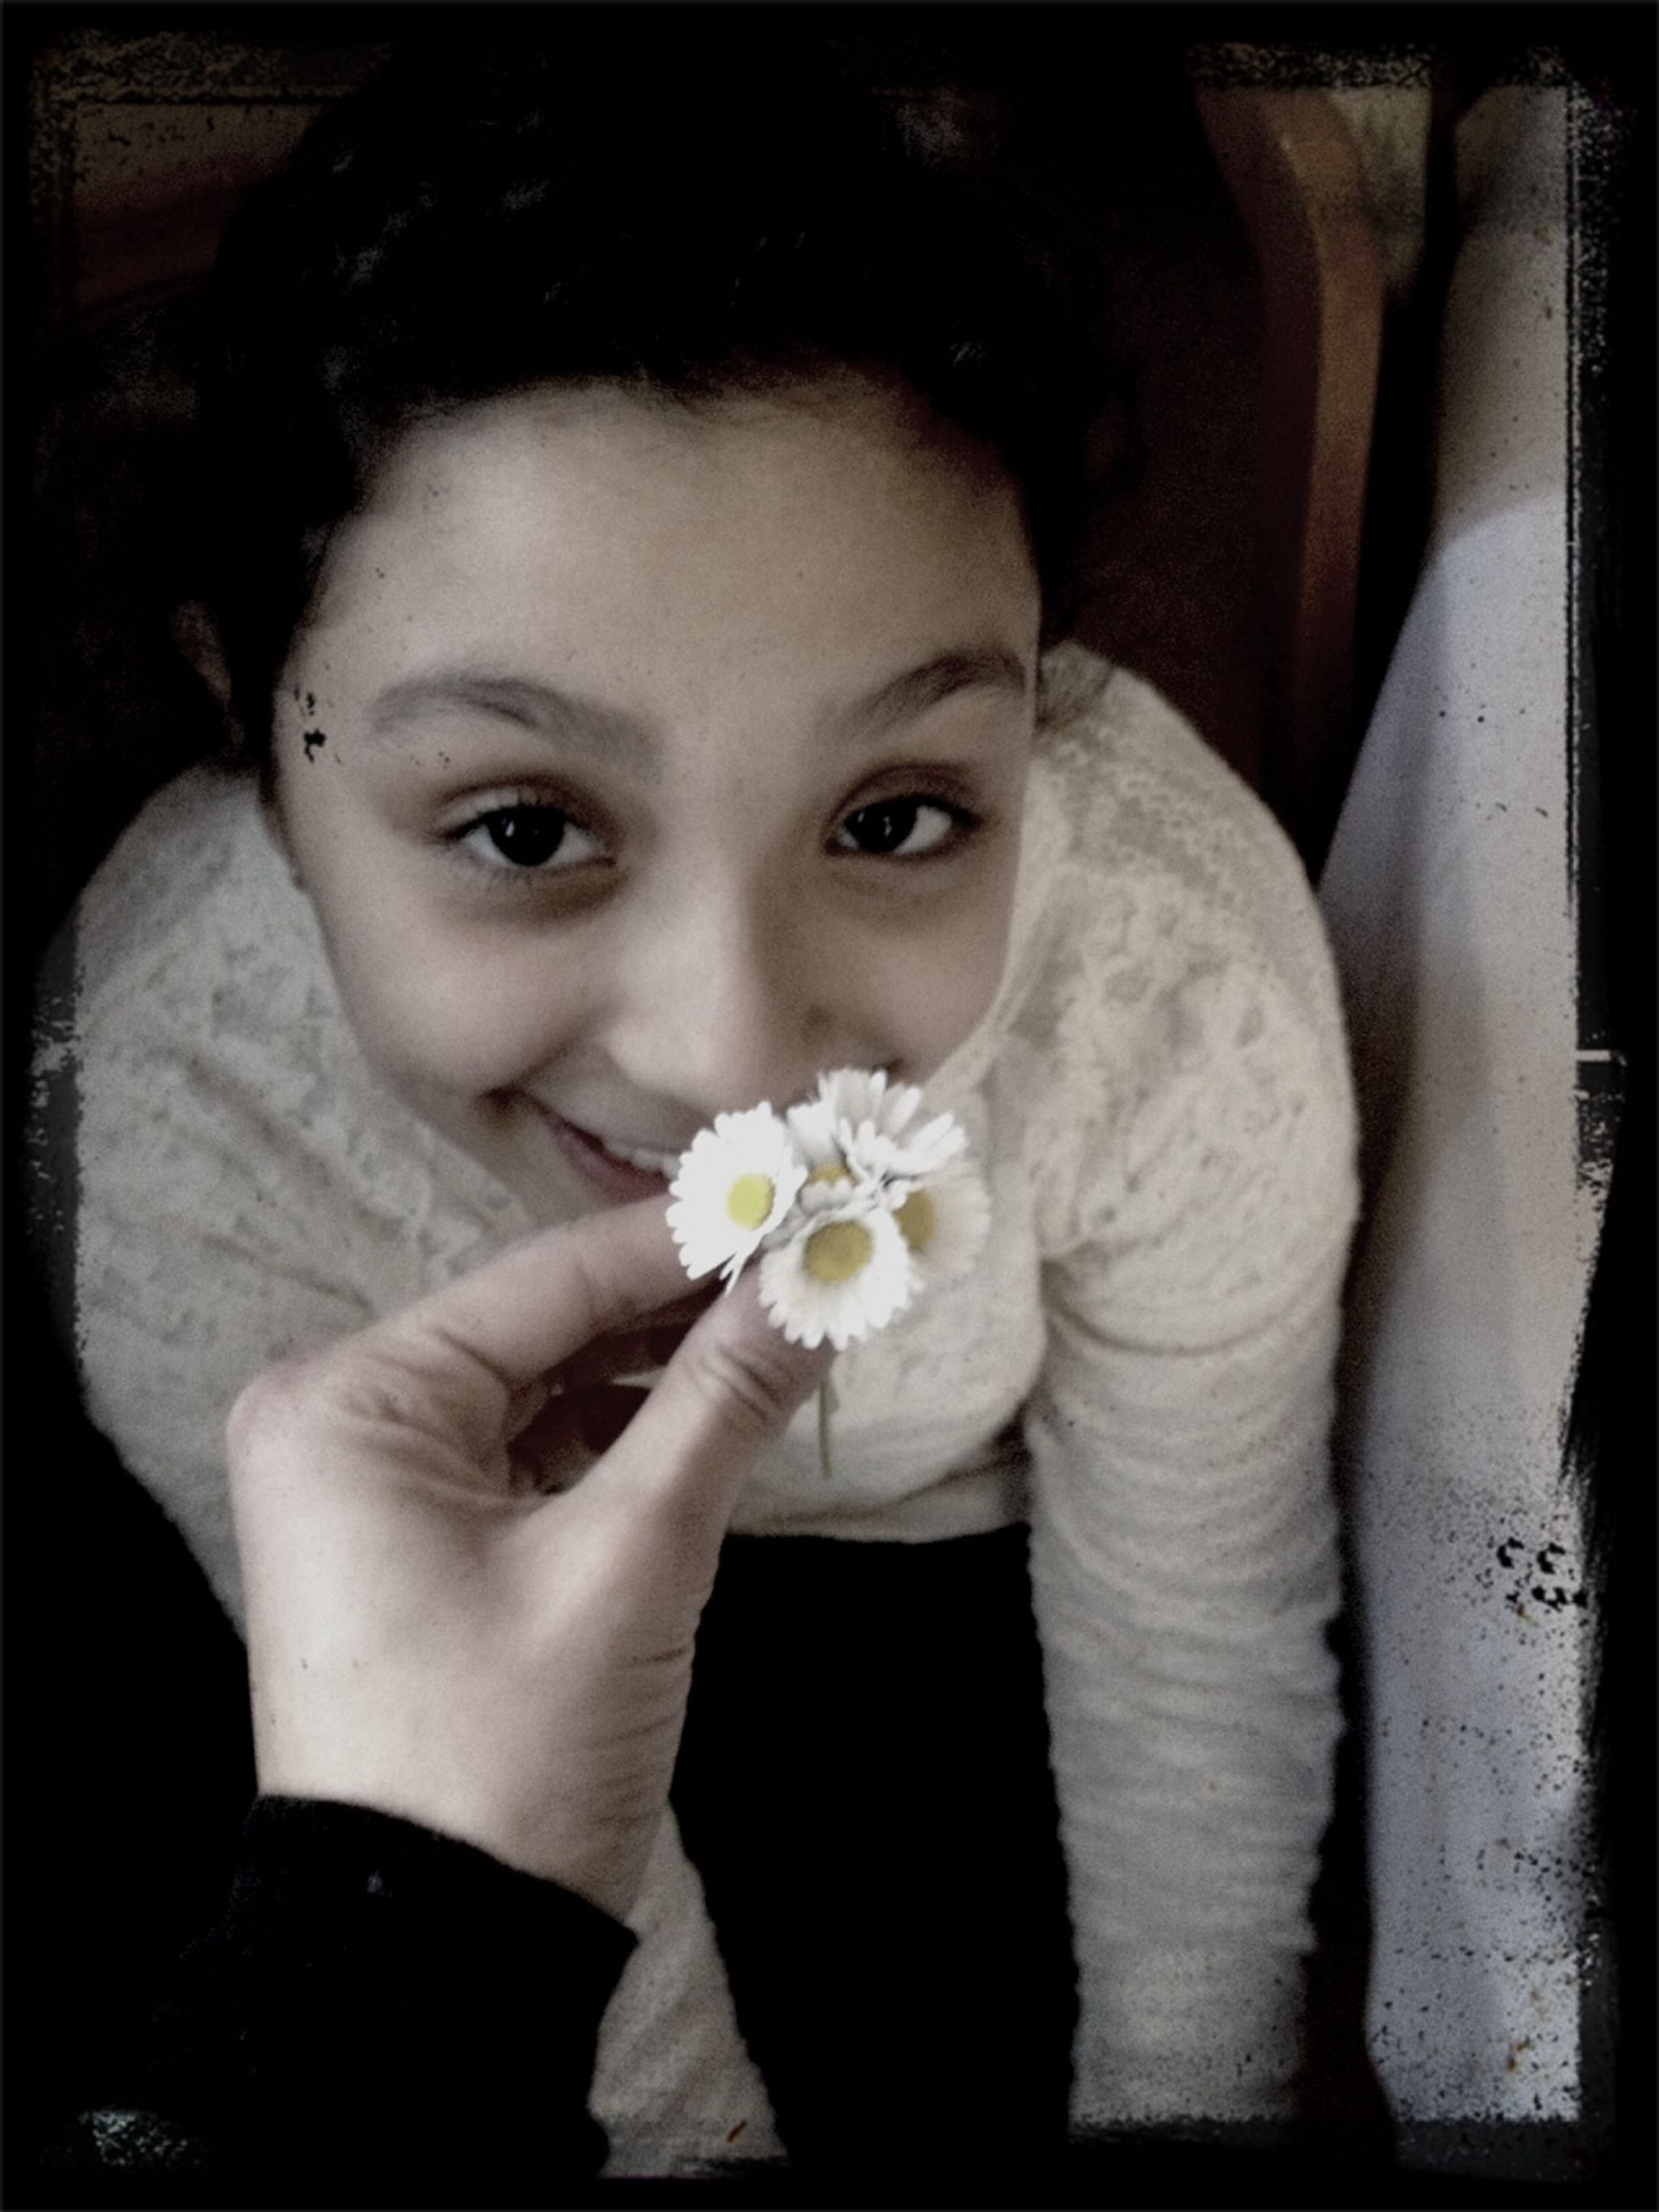 flower, holding, lifestyles, indoors, person, transfer print, leisure activity, close-up, casual clothing, fragility, auto post production filter, freshness, front view, high angle view, white color, flower head